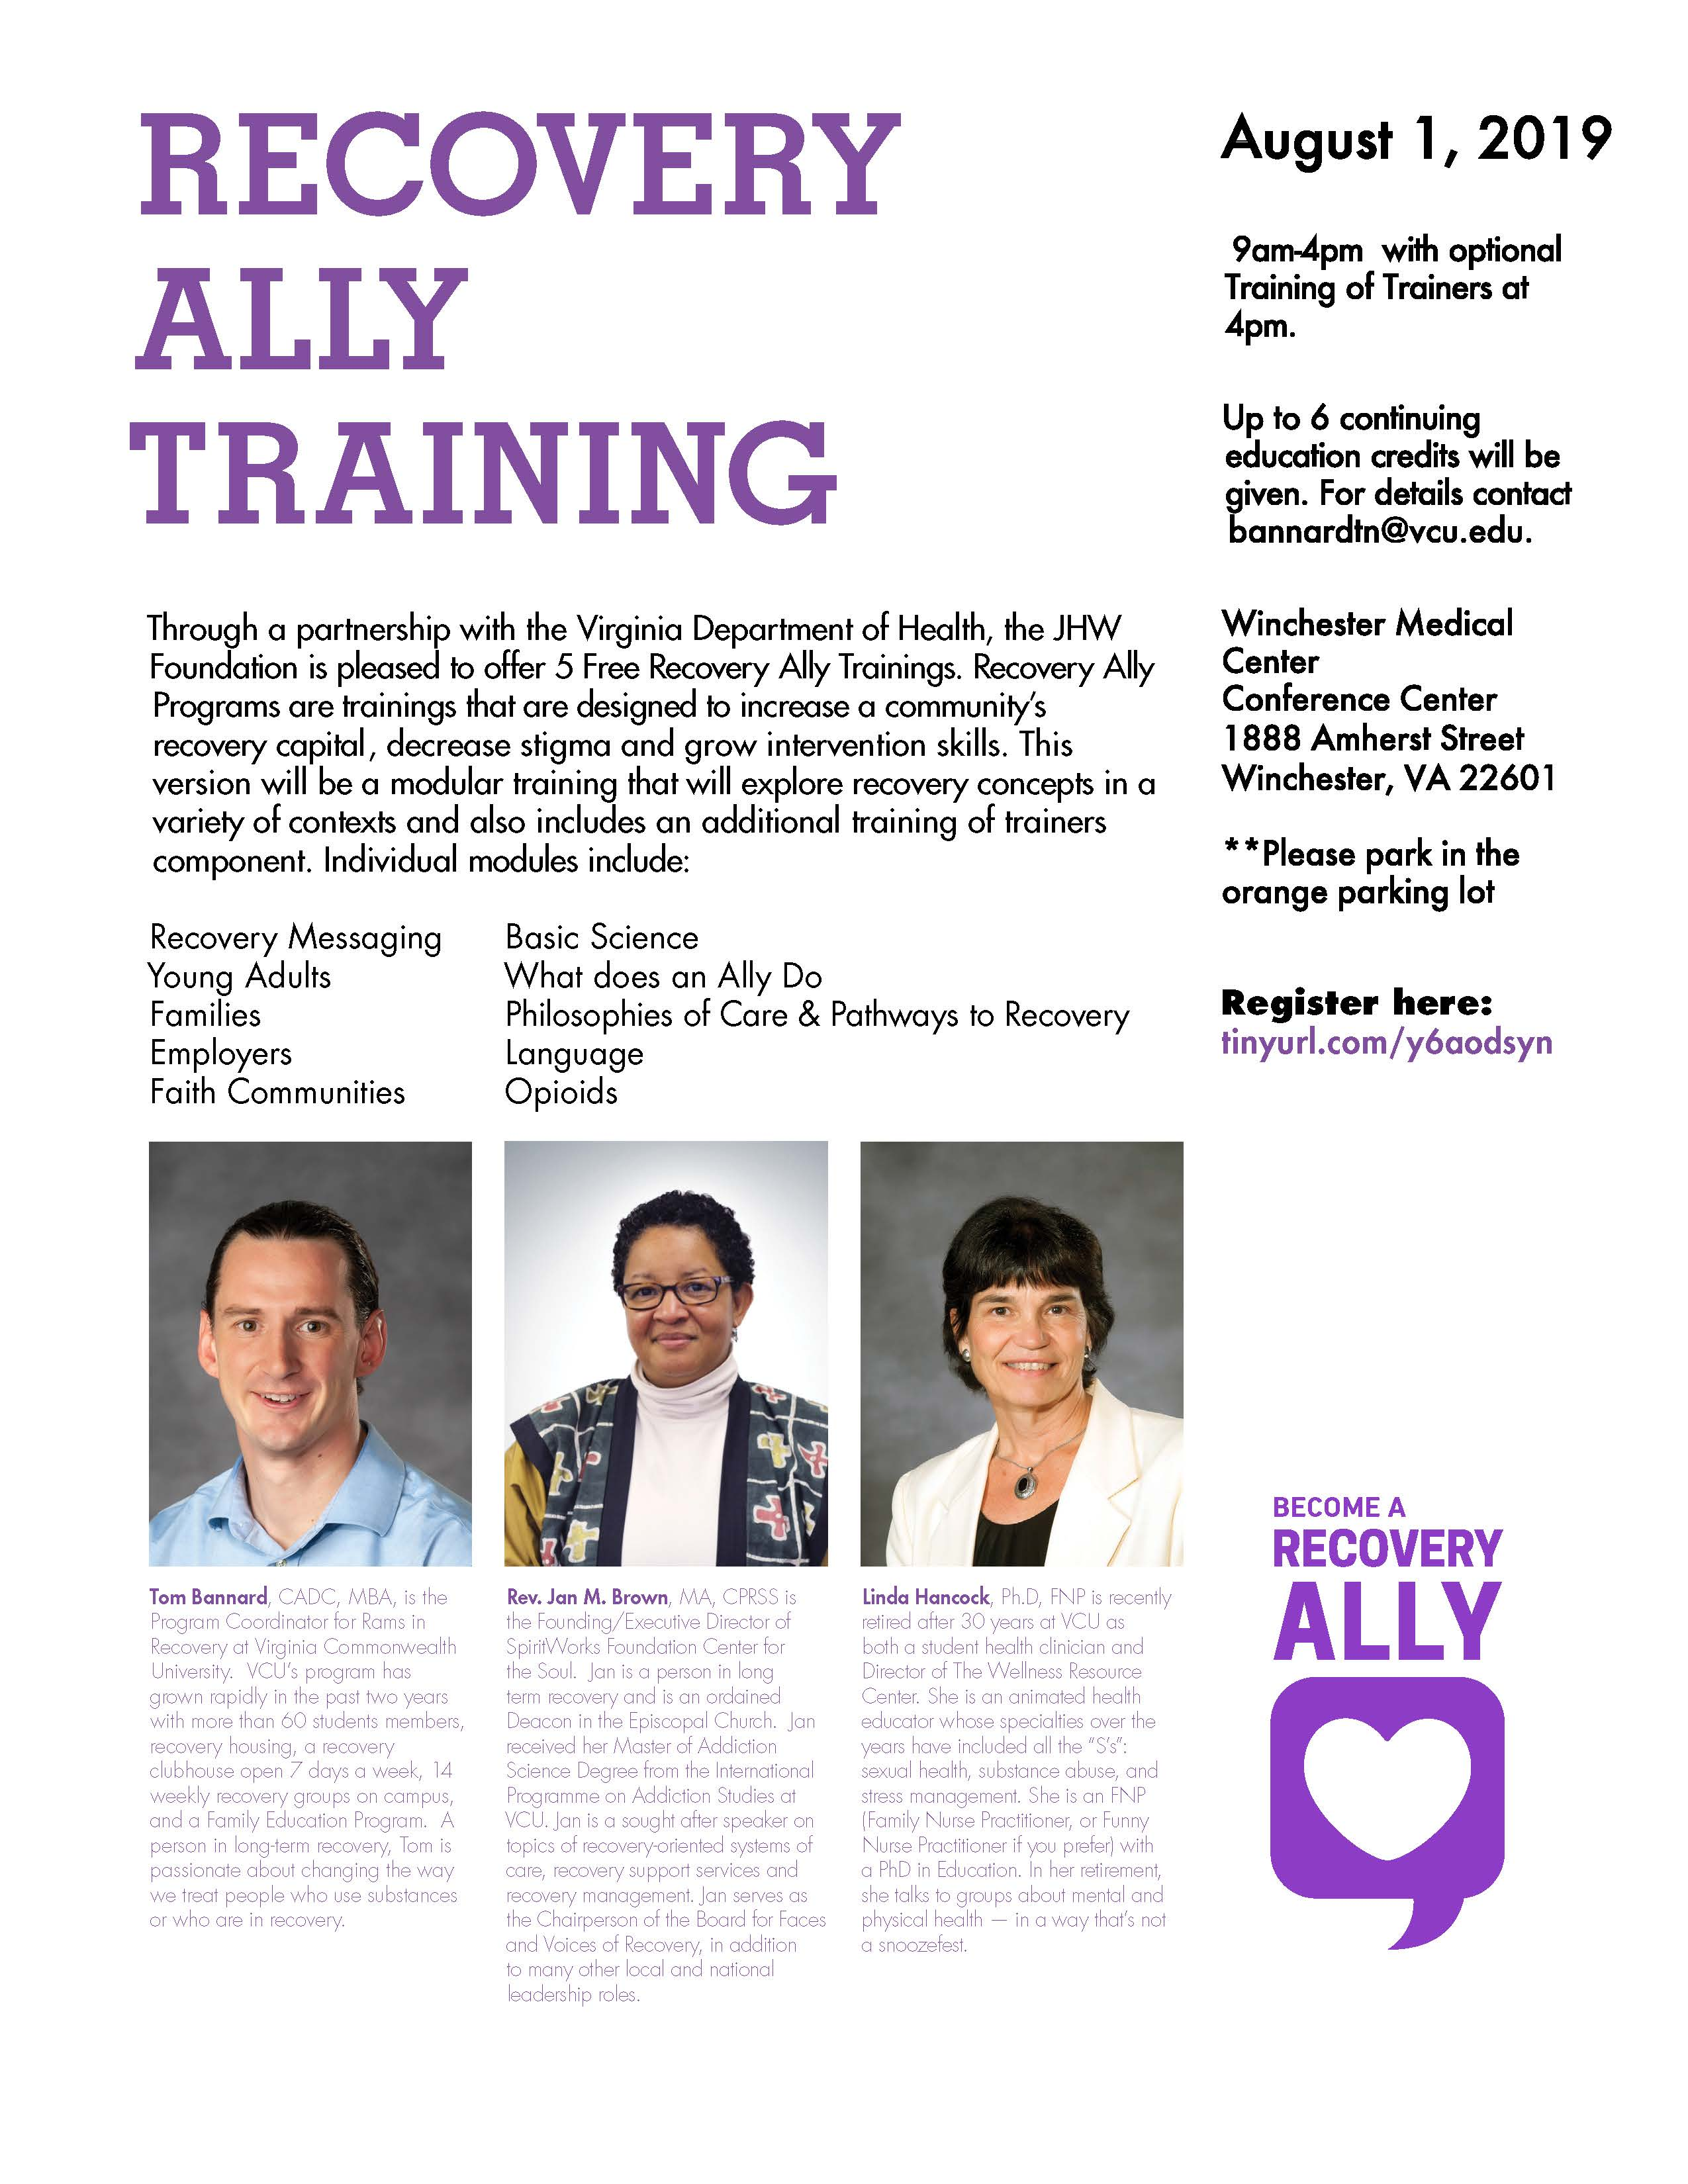 Recovery Ally Training Aug 2019 Winchester